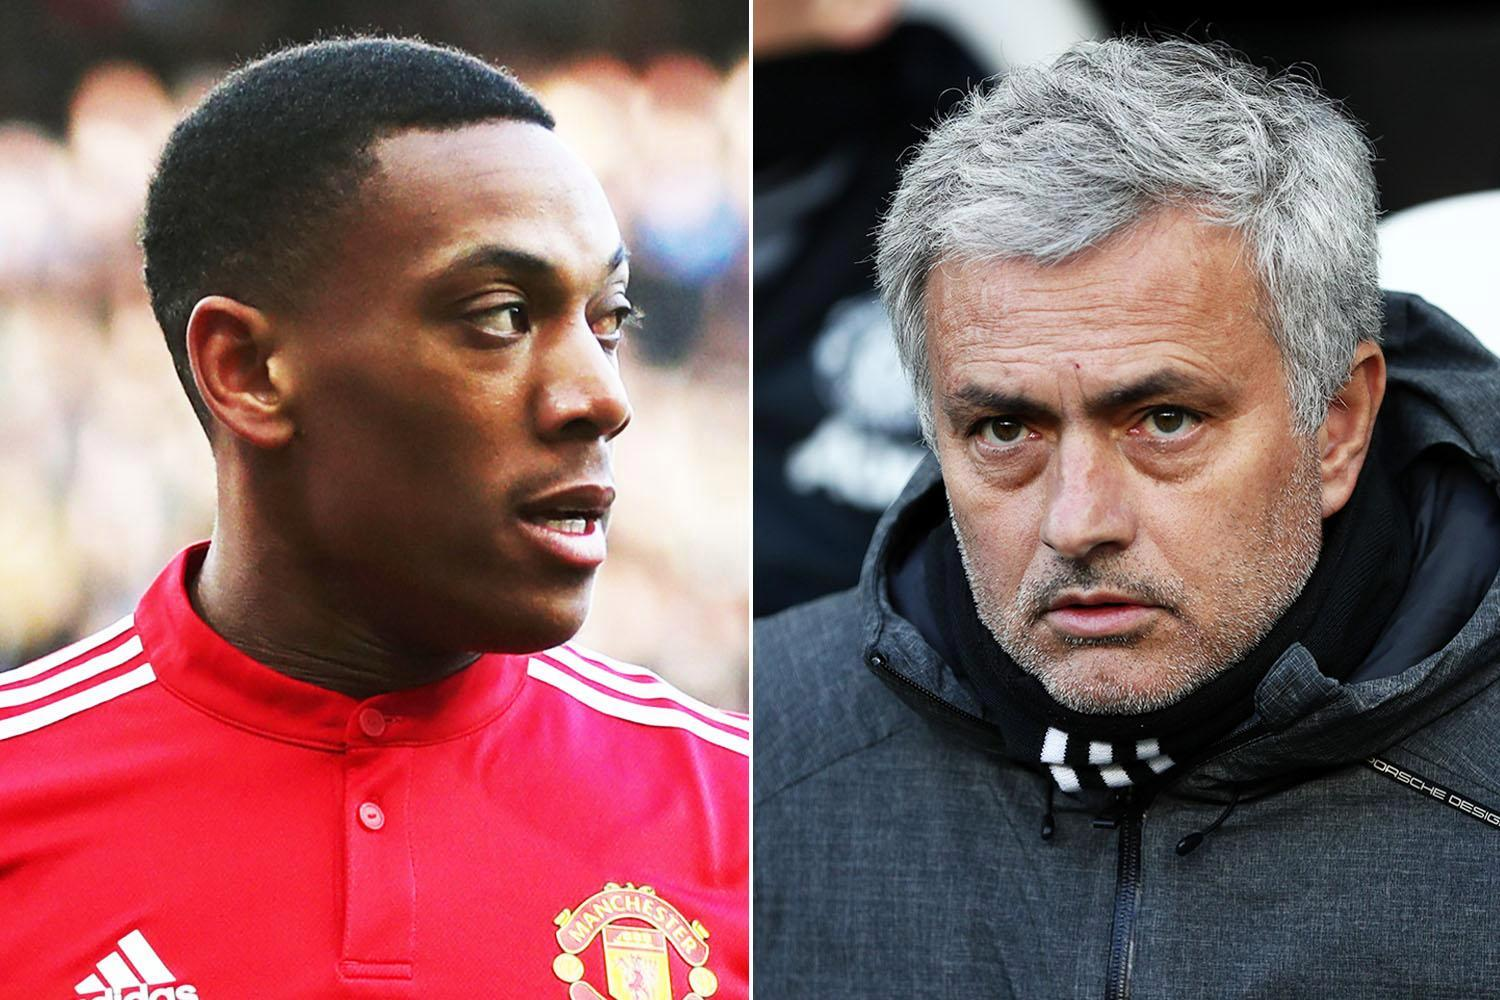 Man United boss Jose Mourinho to sit down with Anthony Martial and give assurances over future after difficult spell